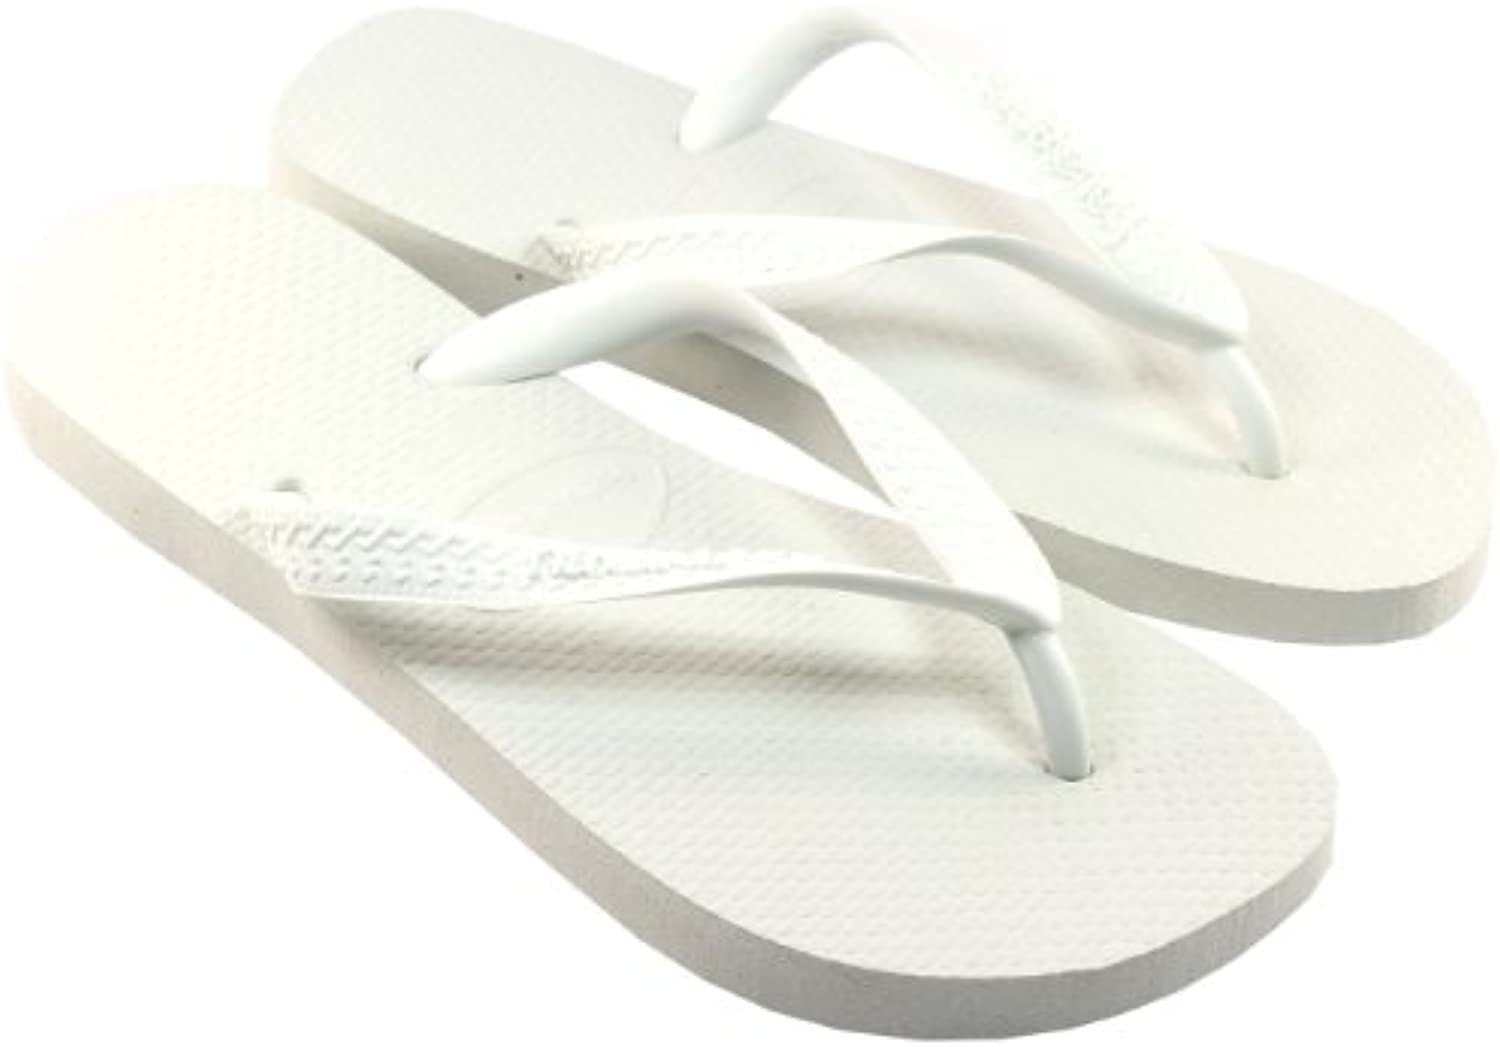 havaianas unisexe h4000029-2797 - adultes h4000029-2797 unisexe tongs 8630bd